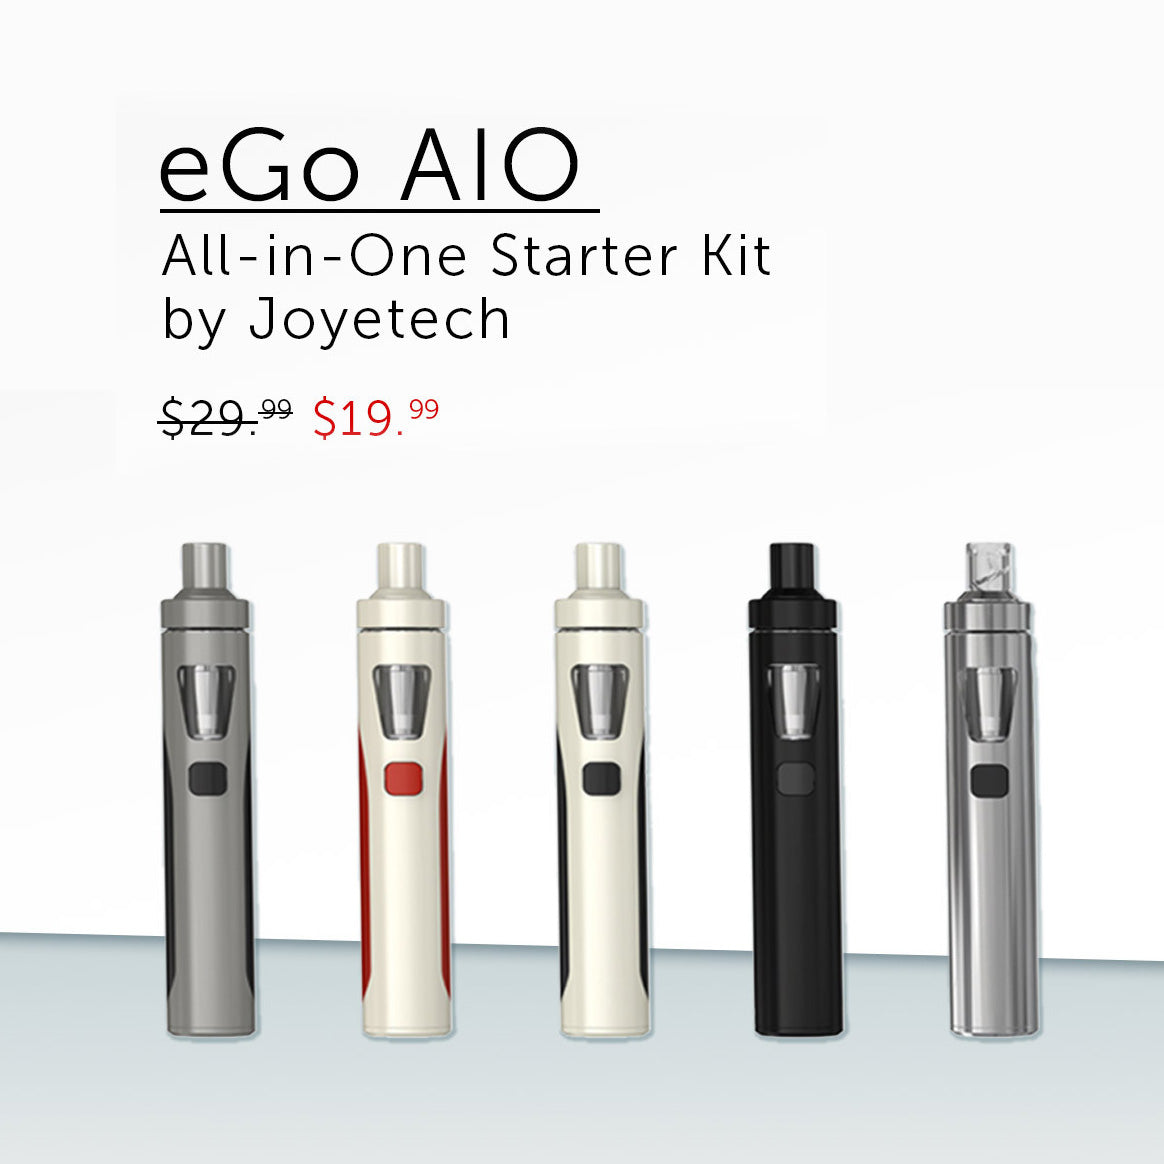 Slide 1 Mobile eGo AIO All-in-One Starter Kit by Joyetech